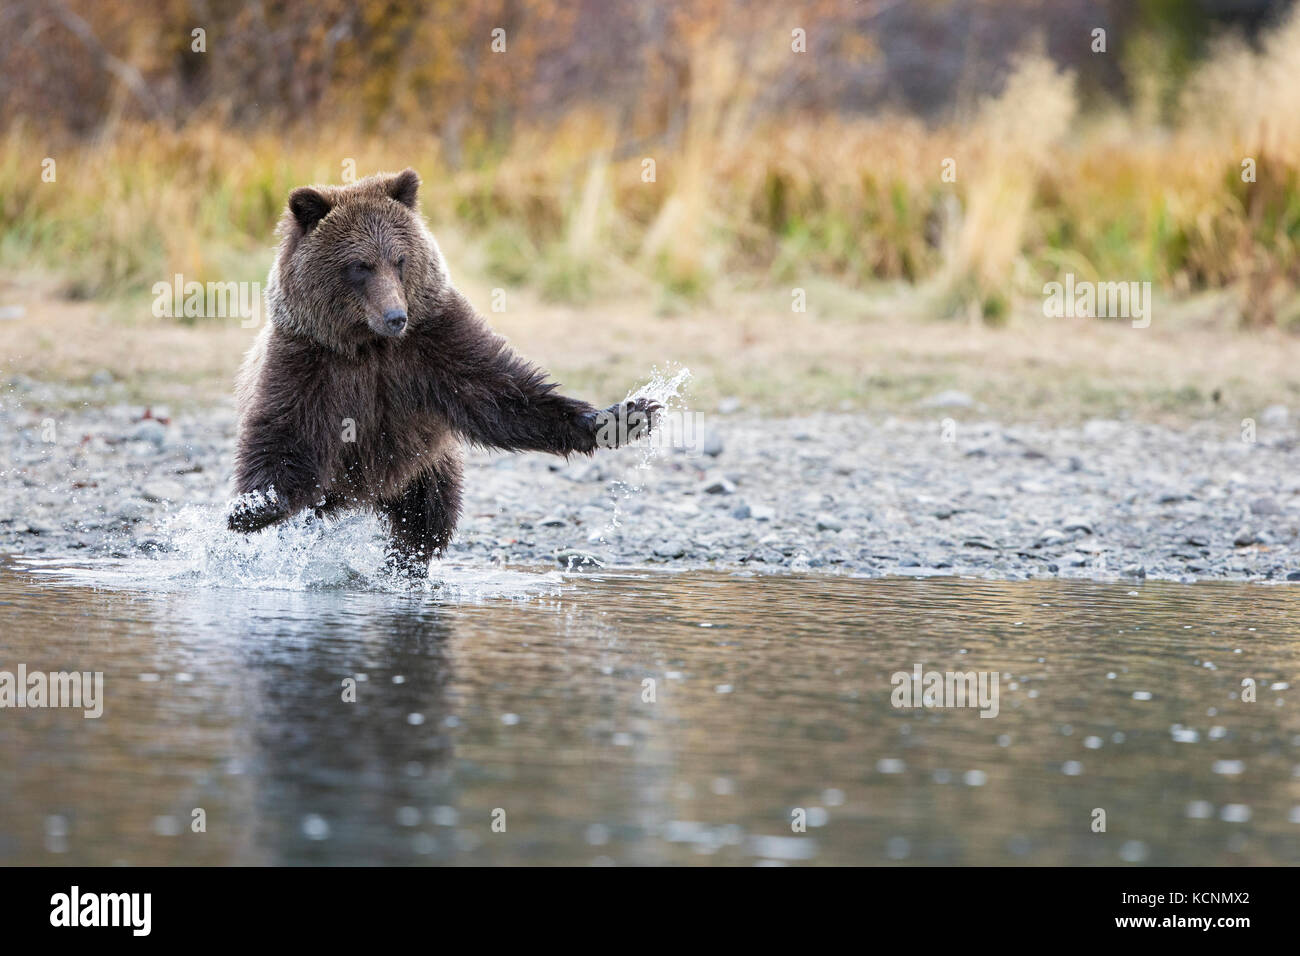 Grizzlybär (Ursus arctos Horribilis), Cub, Ladung, Chilcotin Region, British Columbia, Kanada. Stockbild